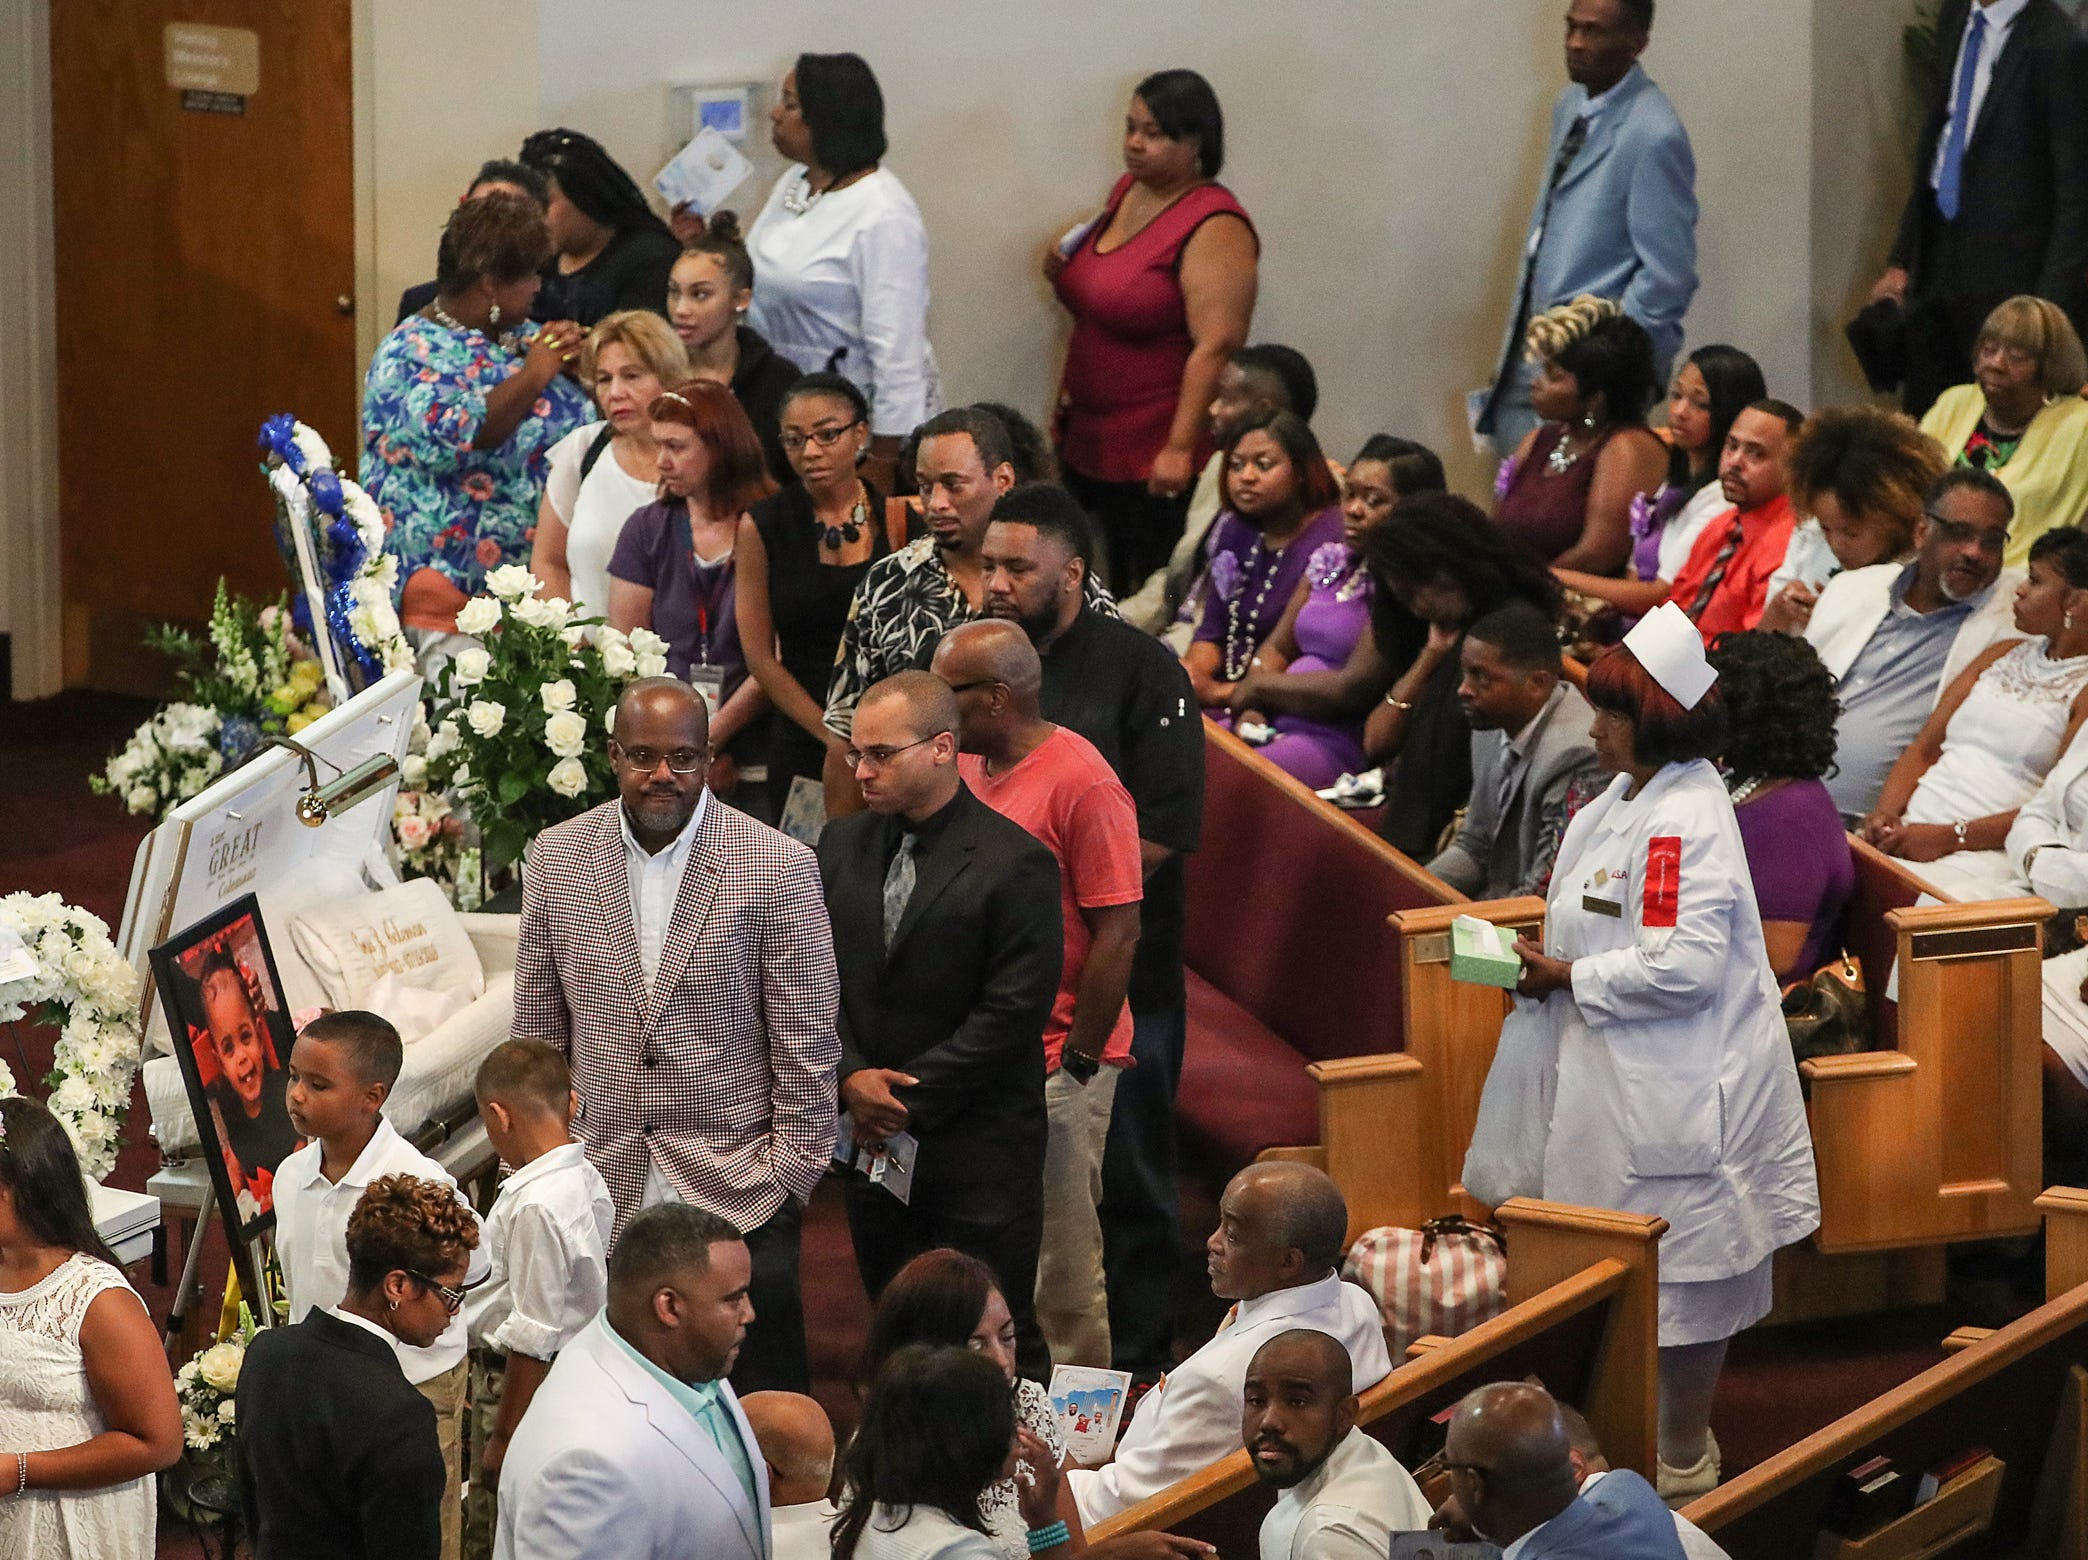 Family and friends gather for a viewing before the homegoing service of Glenn Coleman, 40, Reece, 9, Evan, 7, and Arya, 1, at Grace Apostolic Church on Friday, July 27, 2018. Seventeen people were killed in the duck boat incident in Branson, Missouri, nine of them were members of the Coleman family.